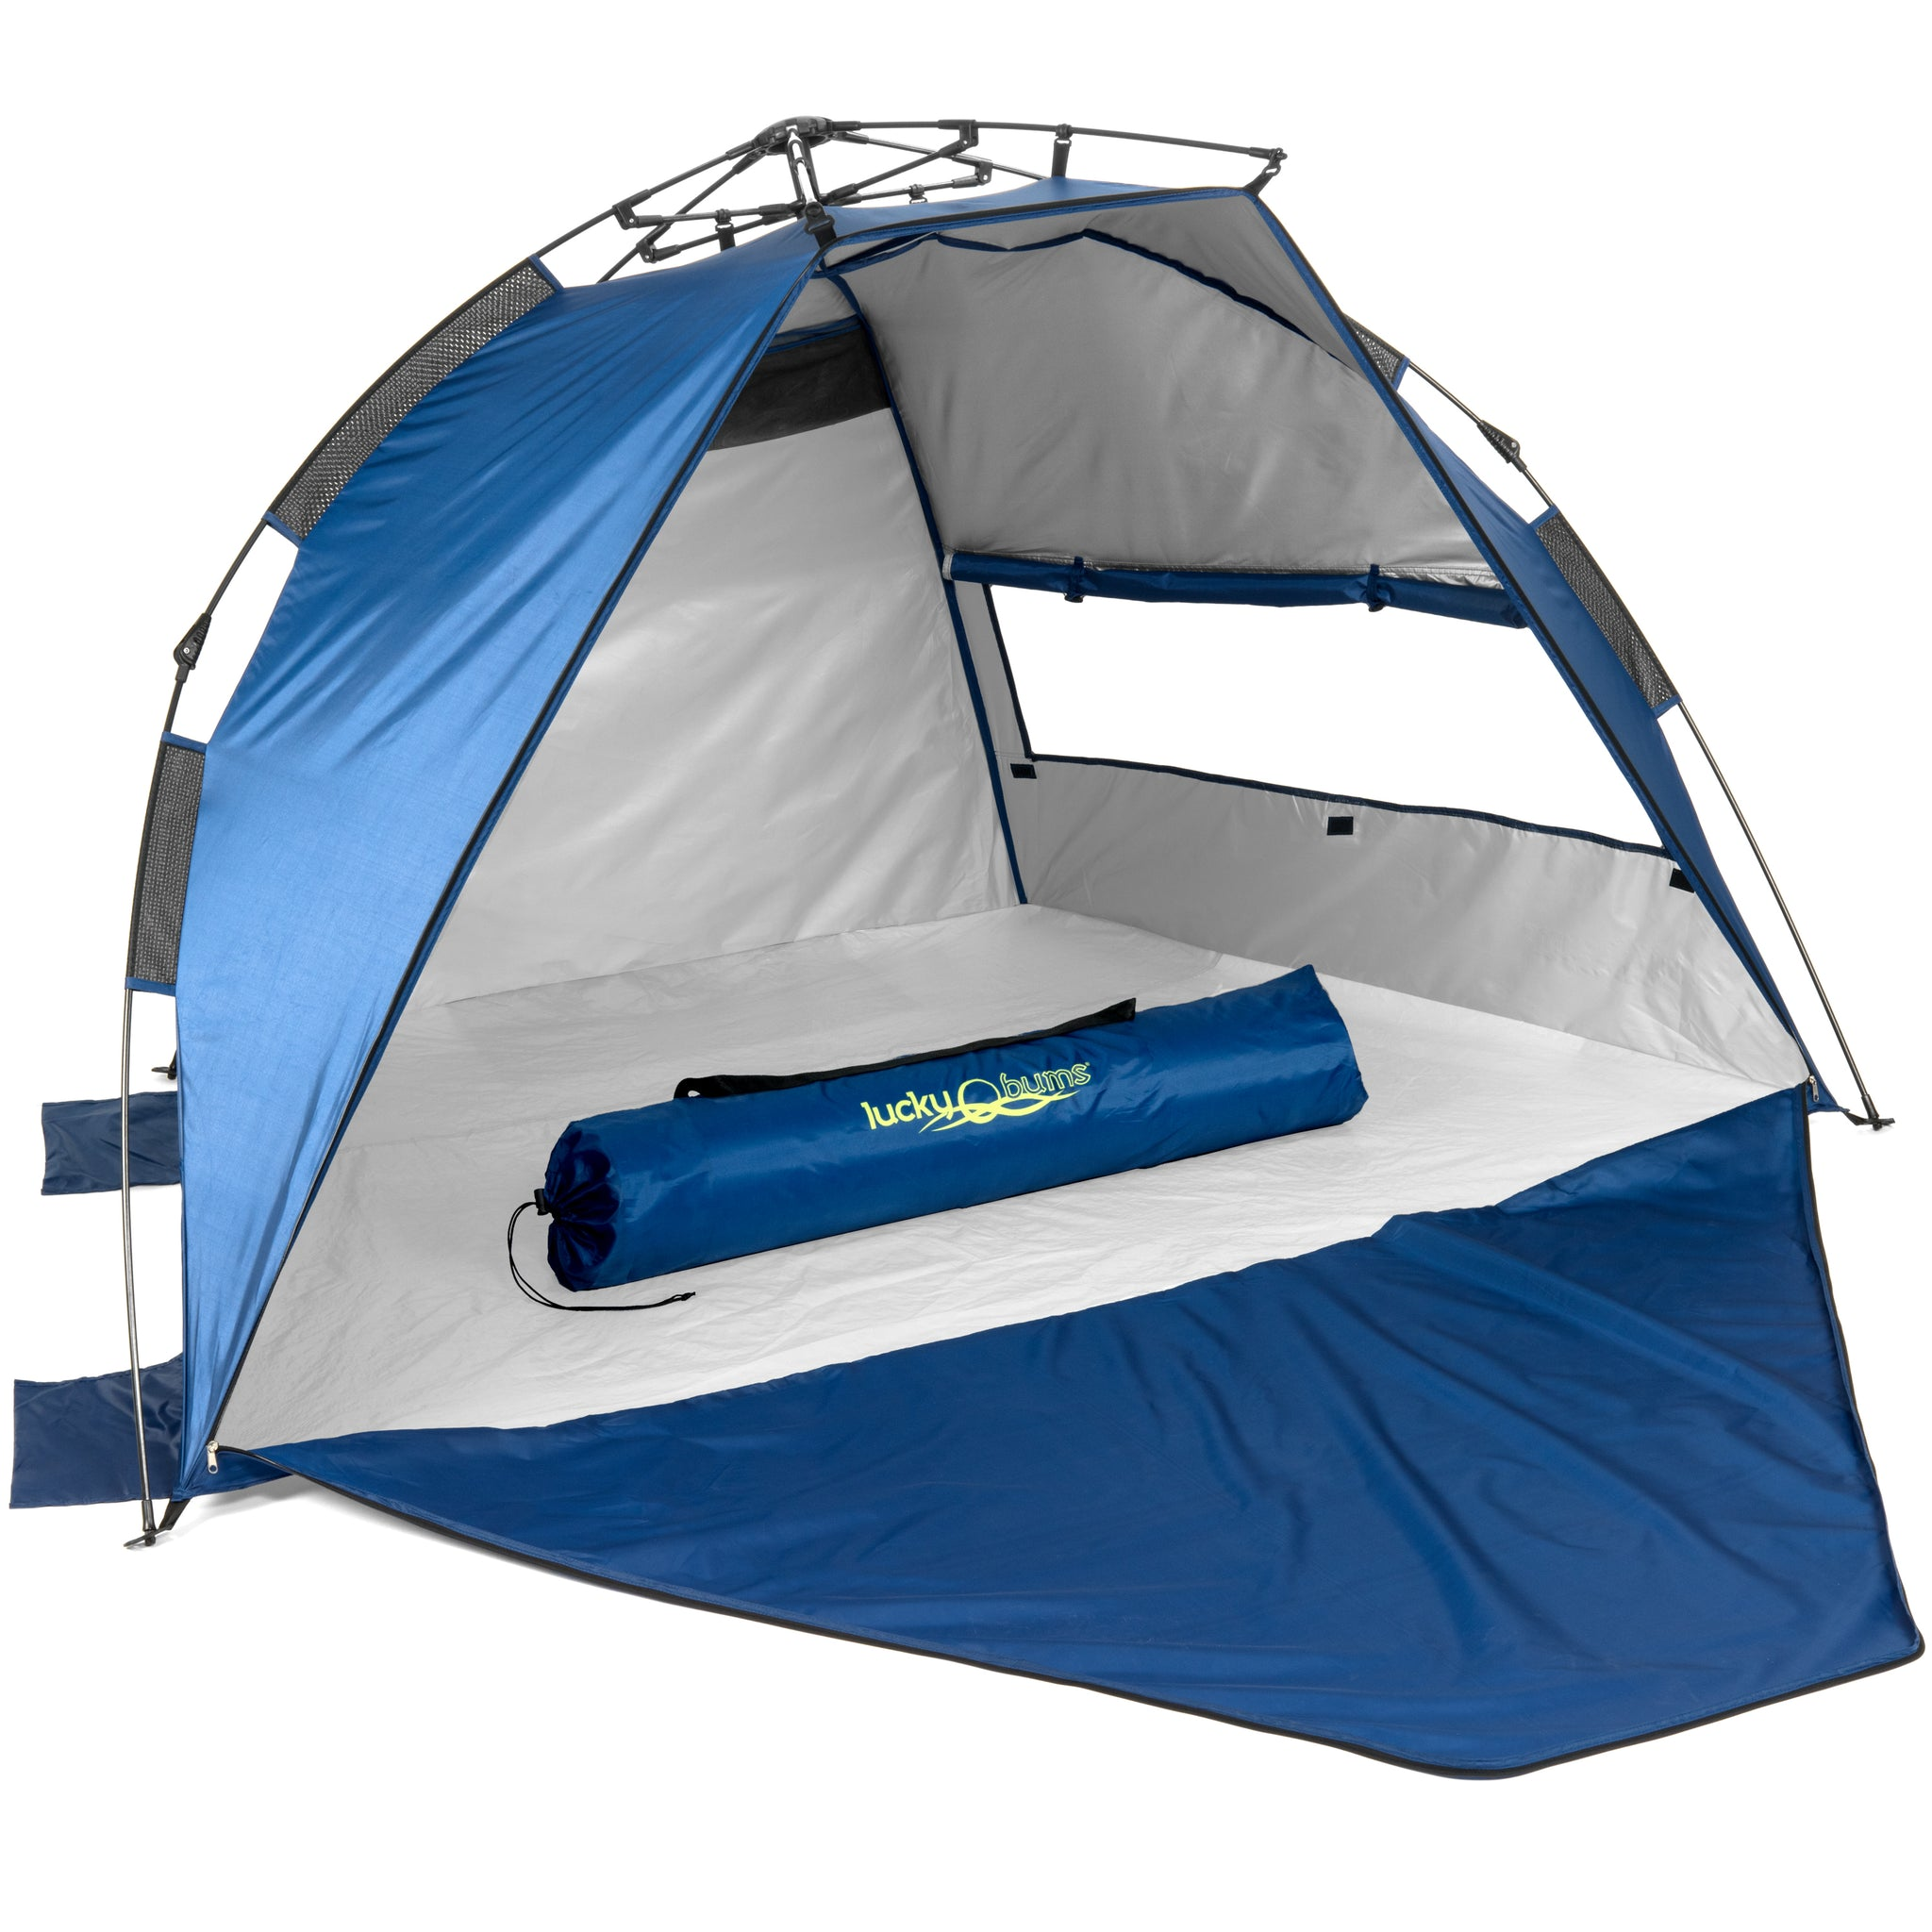 sc 1 st  Lucky Bums & Lucky Bums Easy Pop Up Beach Tent Sun Canopy